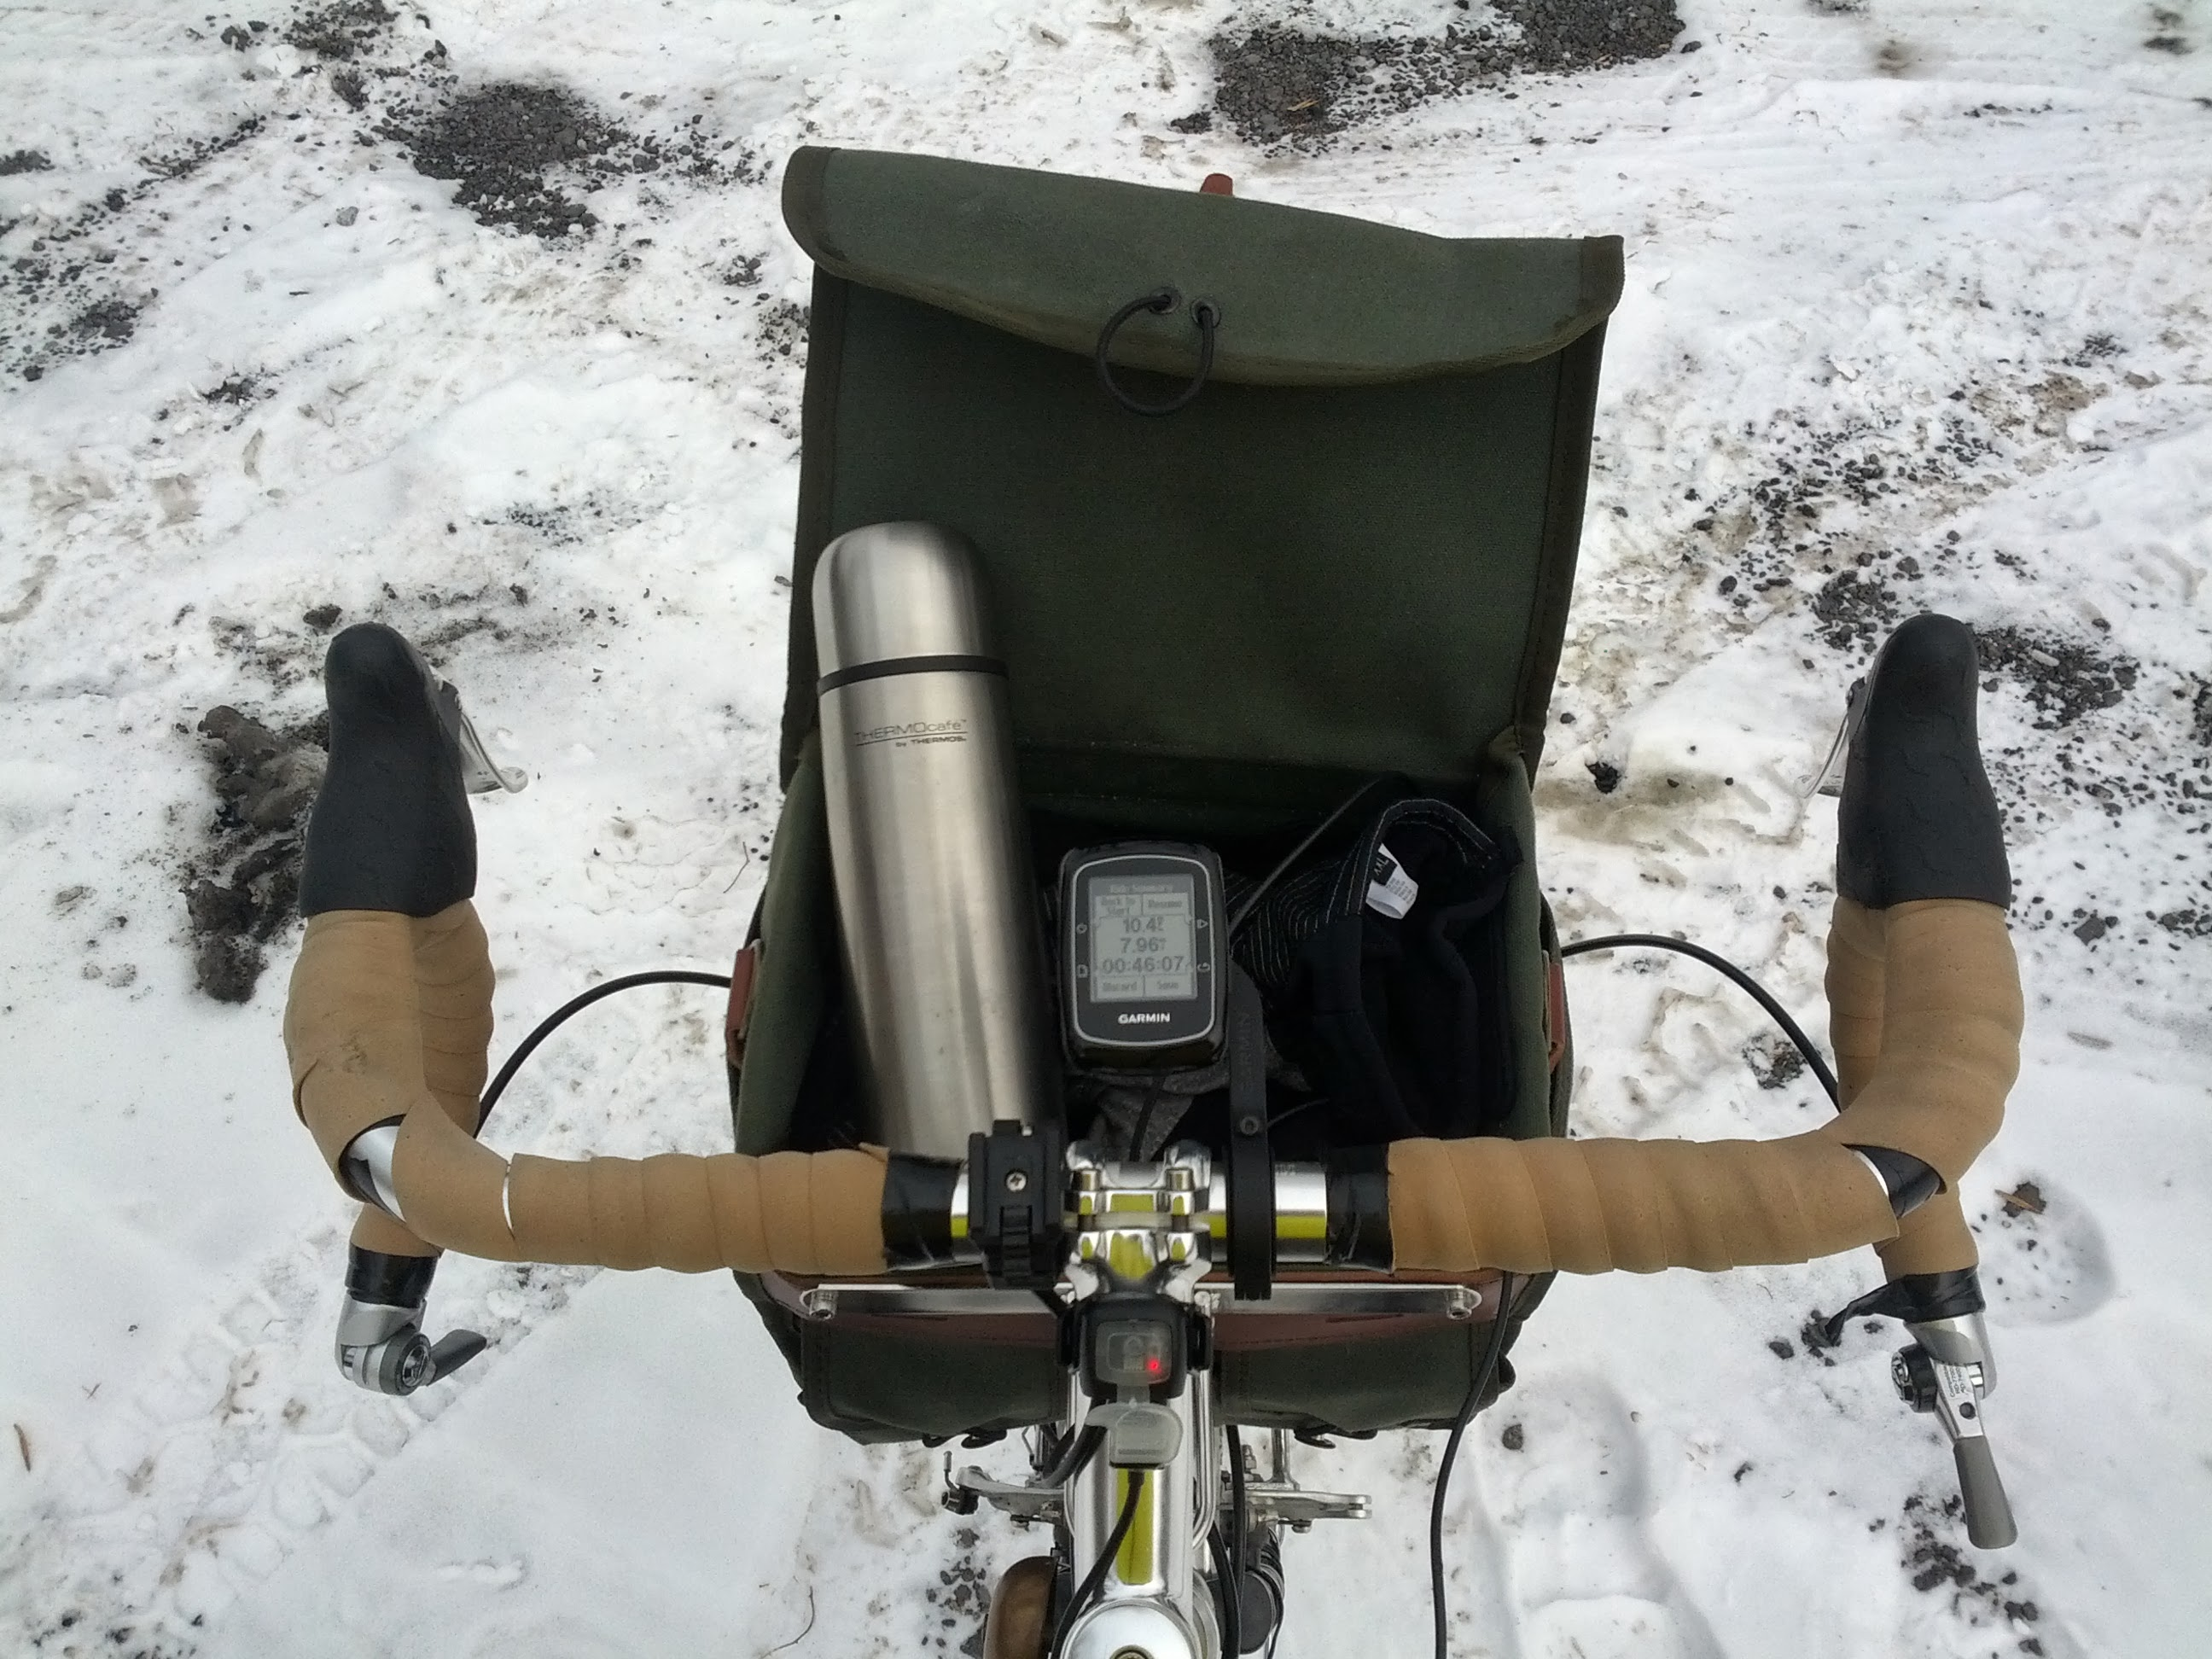 The cockpit of the Cross-Check.  Thermos of hot coffee in the handlebar bag.